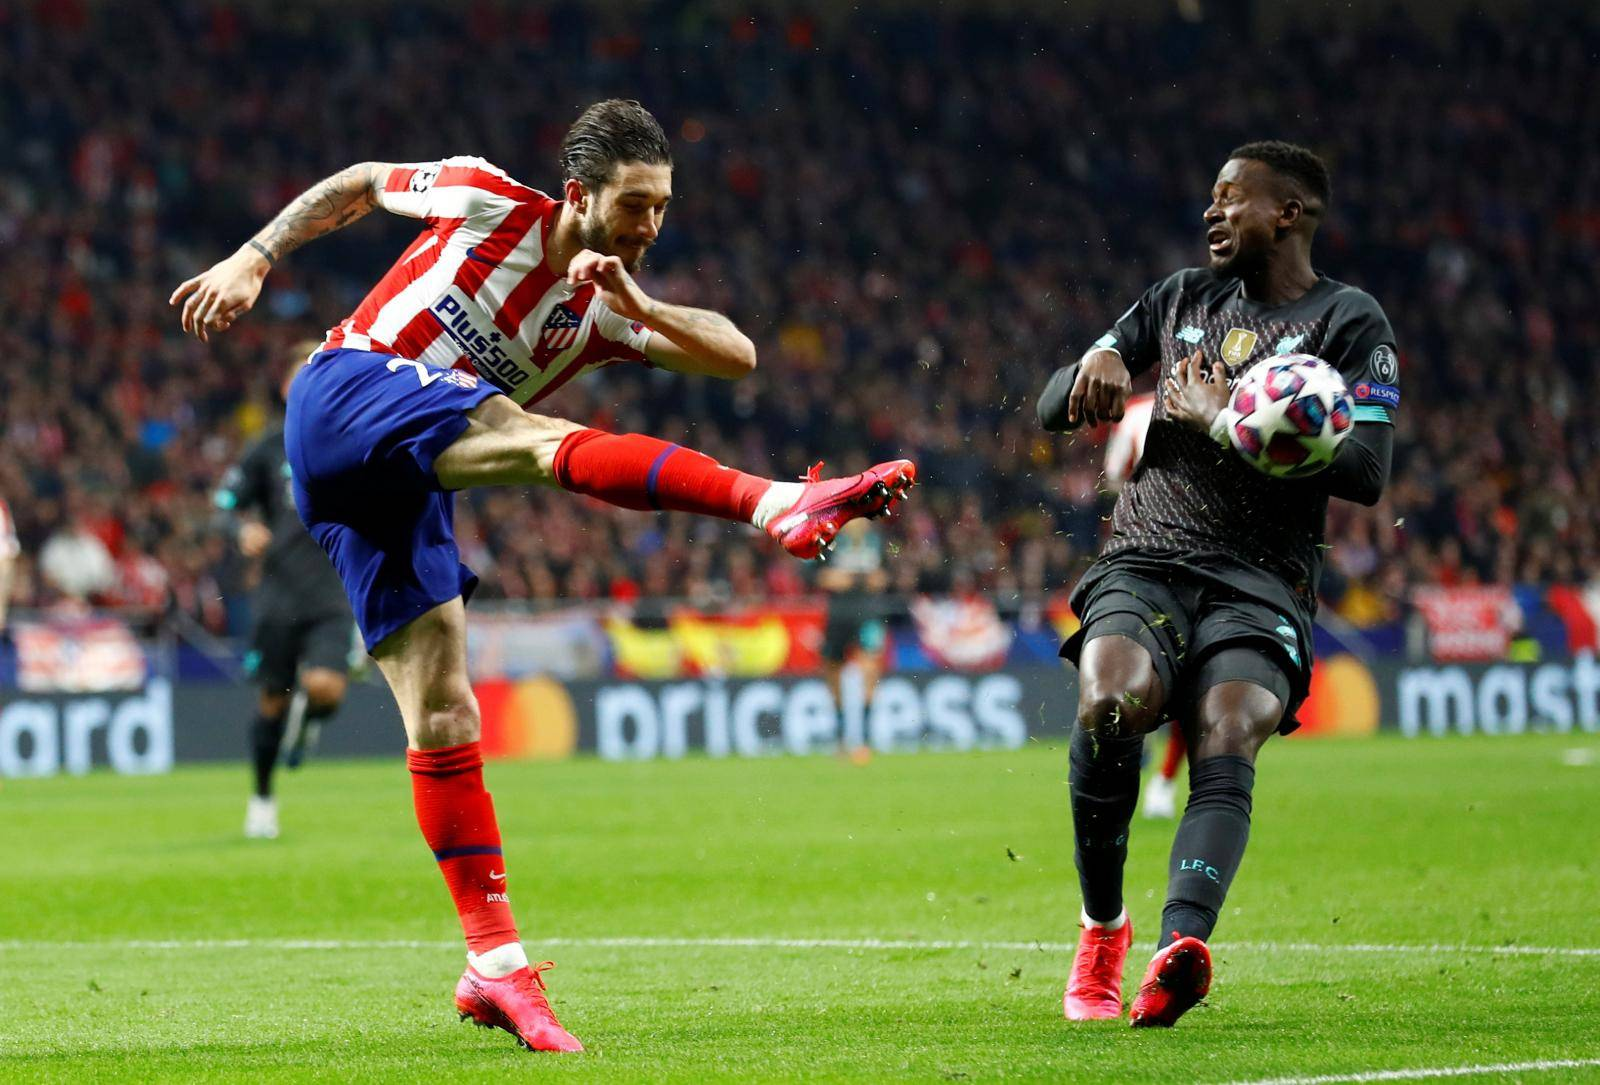 Champions League - Round of 16 First Leg - Atletico Madrid v Liverpool